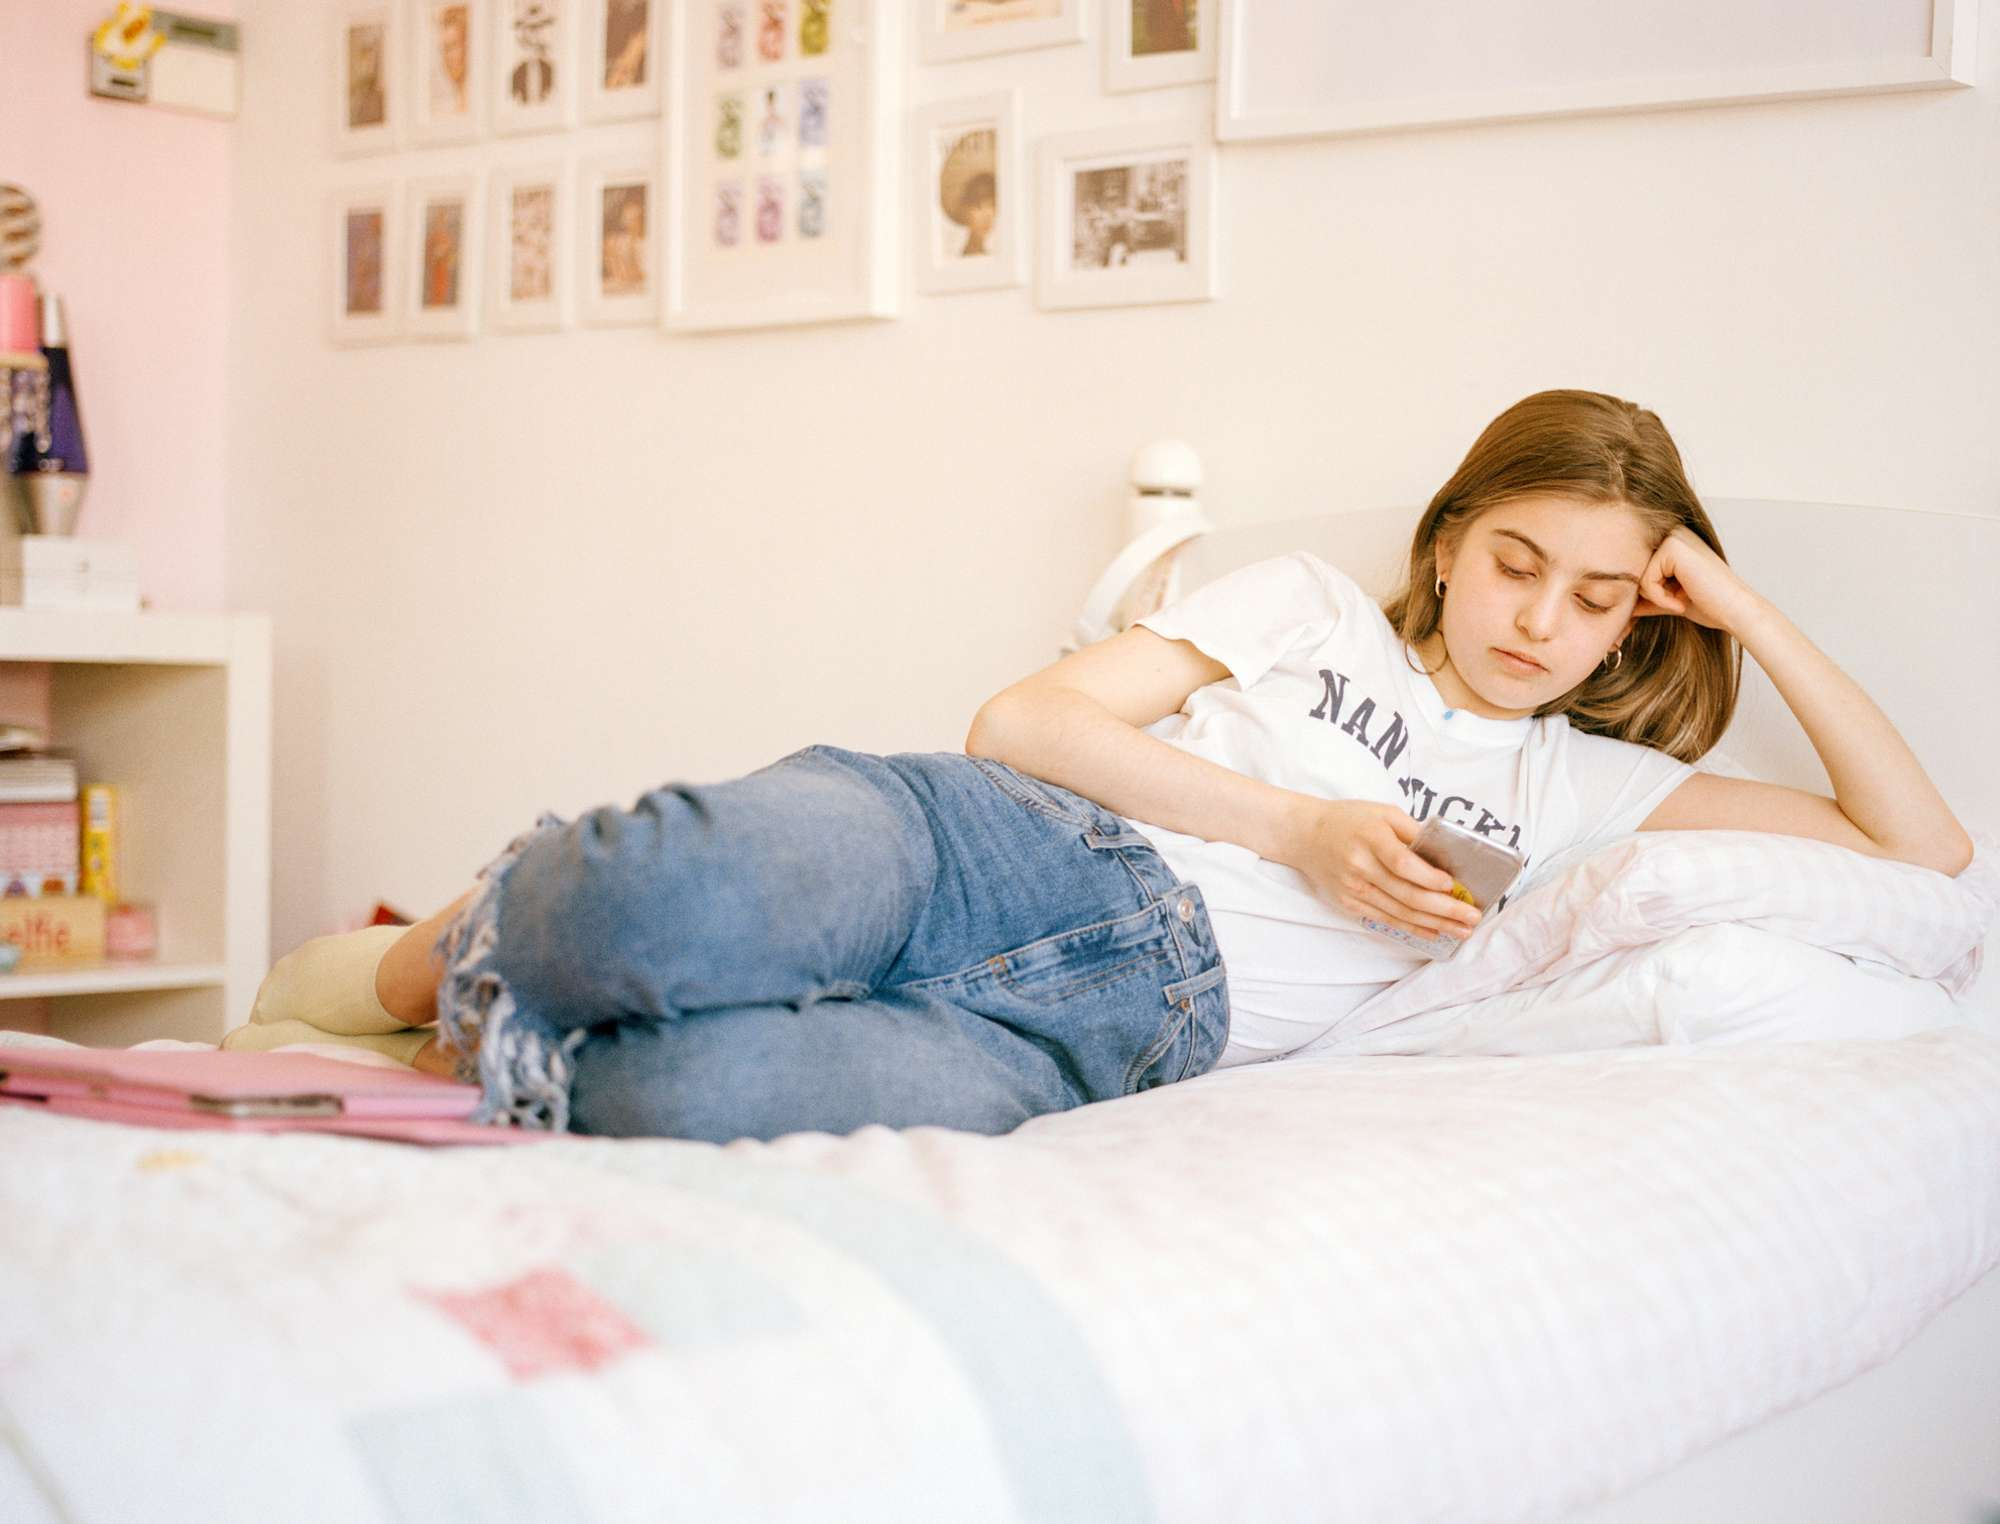 A young girl looking at her phone on her bed